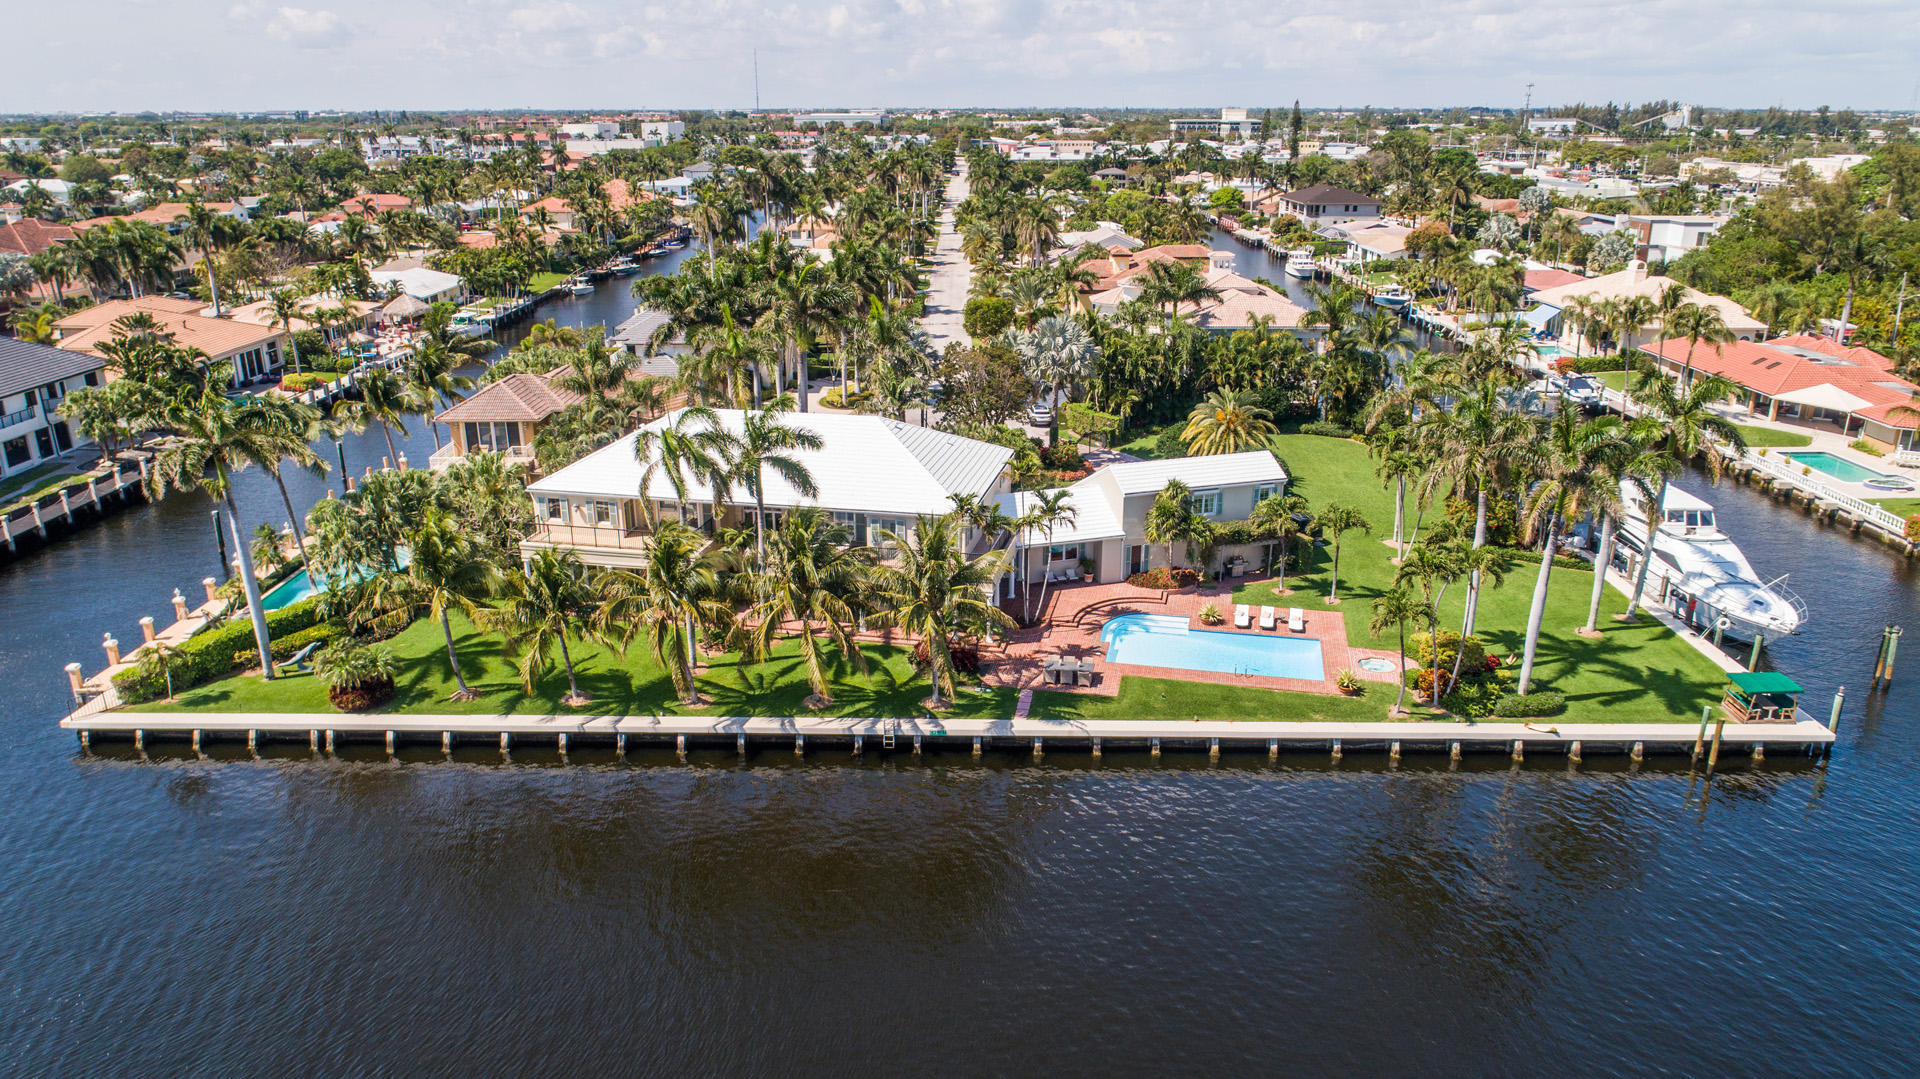 963 Eve Street, Delray Beach, Florida 33483, 5 Bedrooms Bedrooms, ,4.2 BathroomsBathrooms,Single Family,For Sale,Eve,RX-10508497